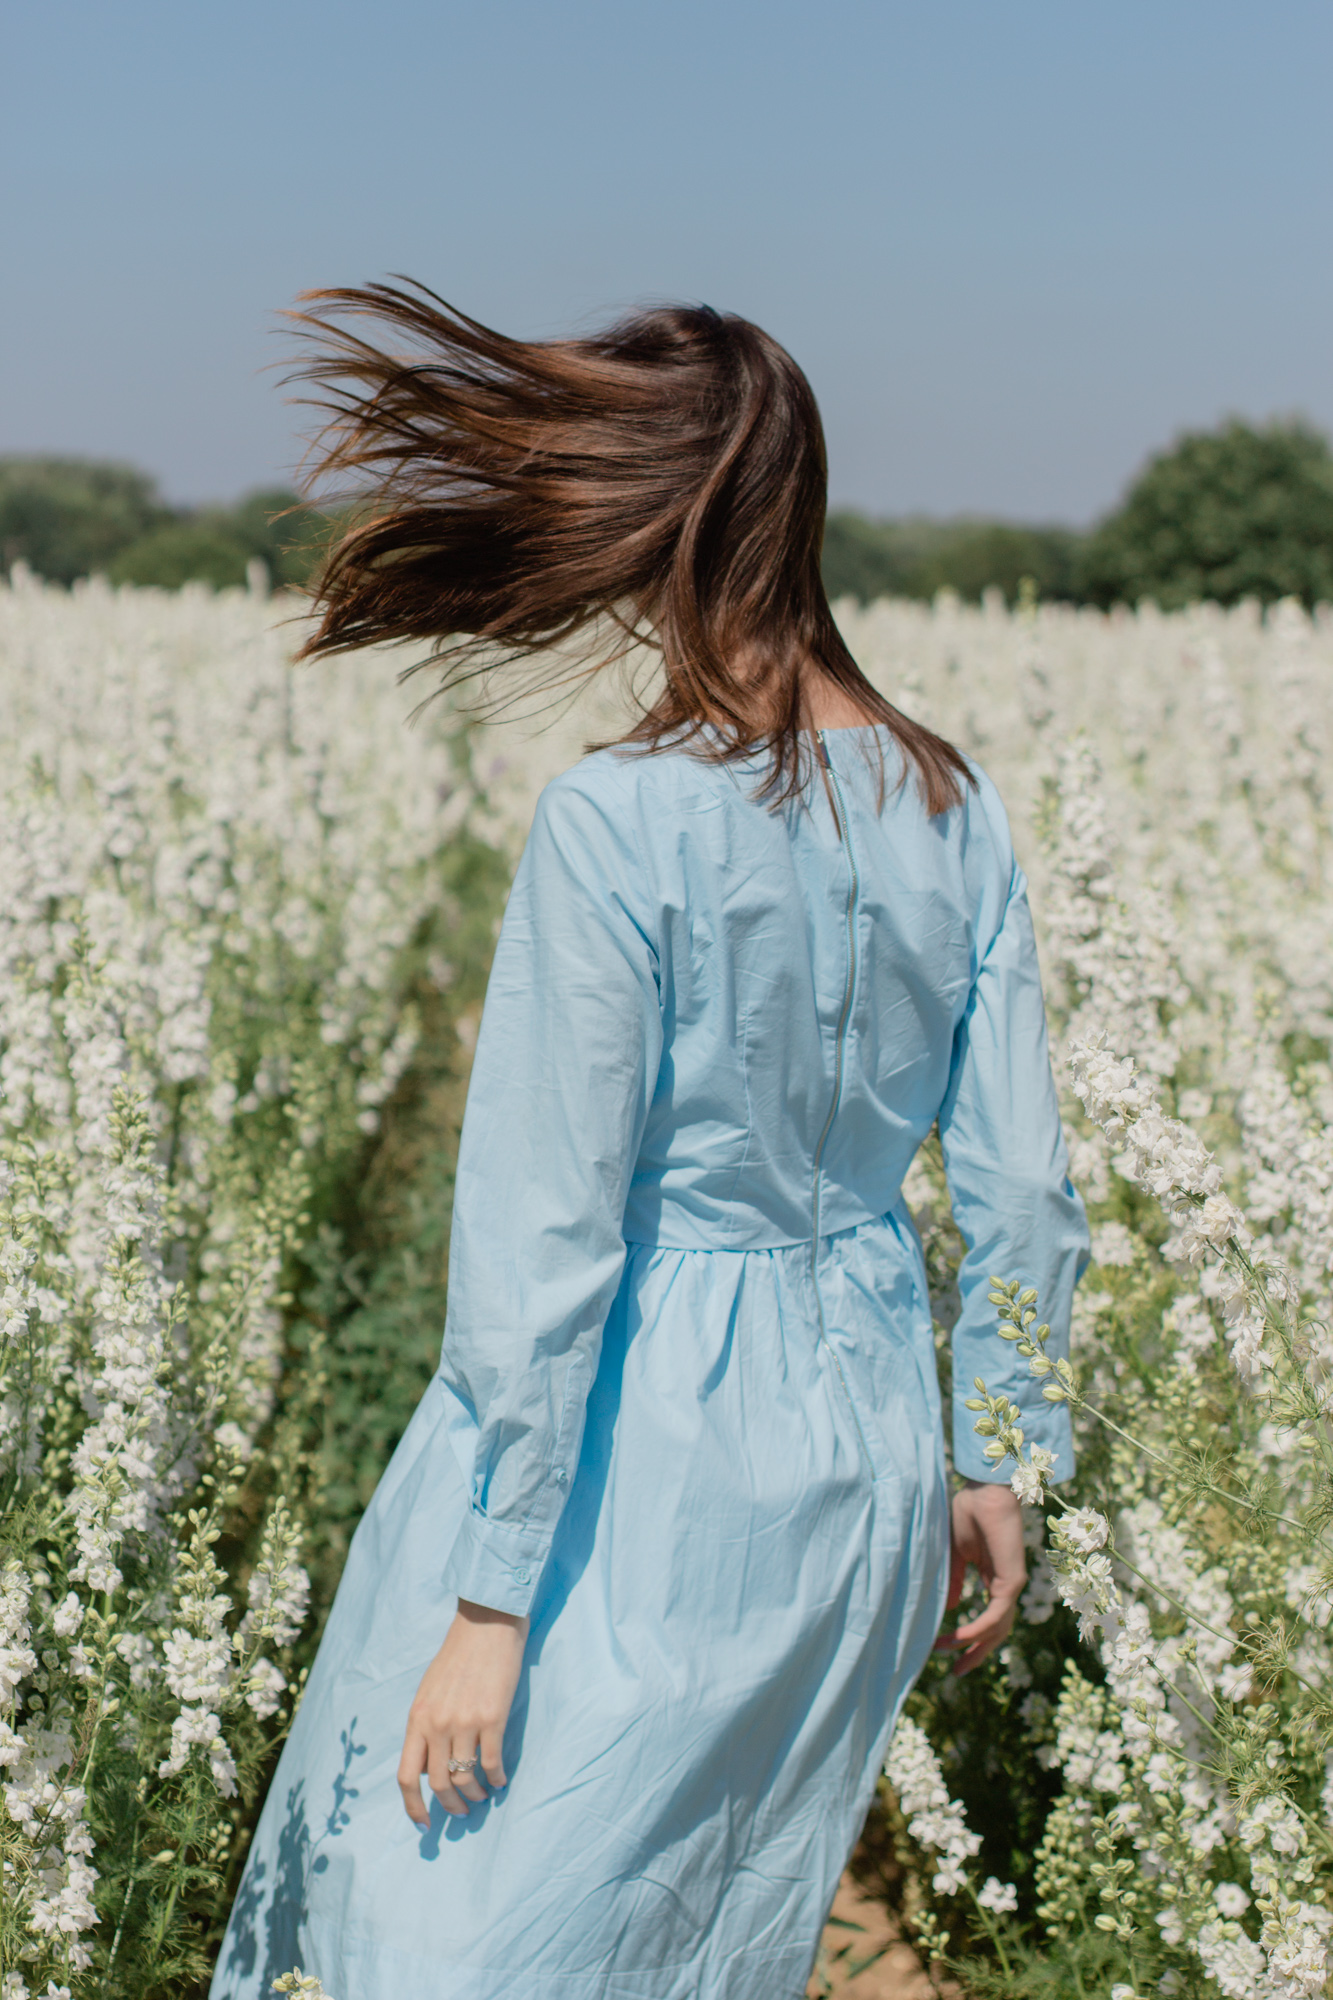 Wearing a blue dress at the Real Flower Petal Confetti Co Flower Fields in Warwick outside of London | Sundays and Somedays